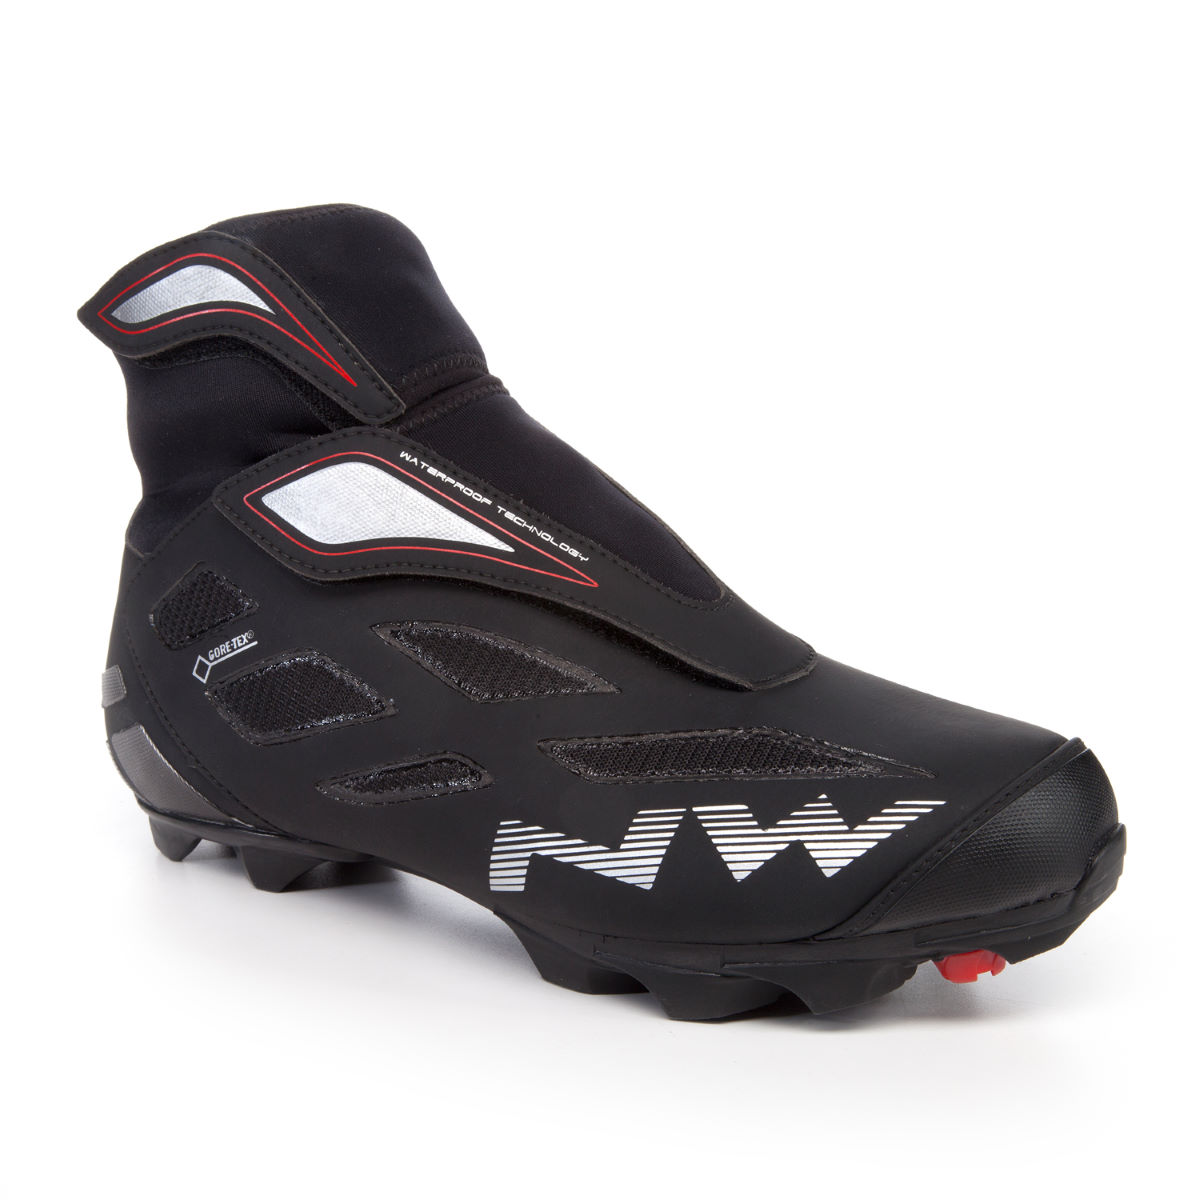 Botines Northwave Celsius 2 GTX SPD Winter exclusivos en Wiggle - Zapatillas MTB